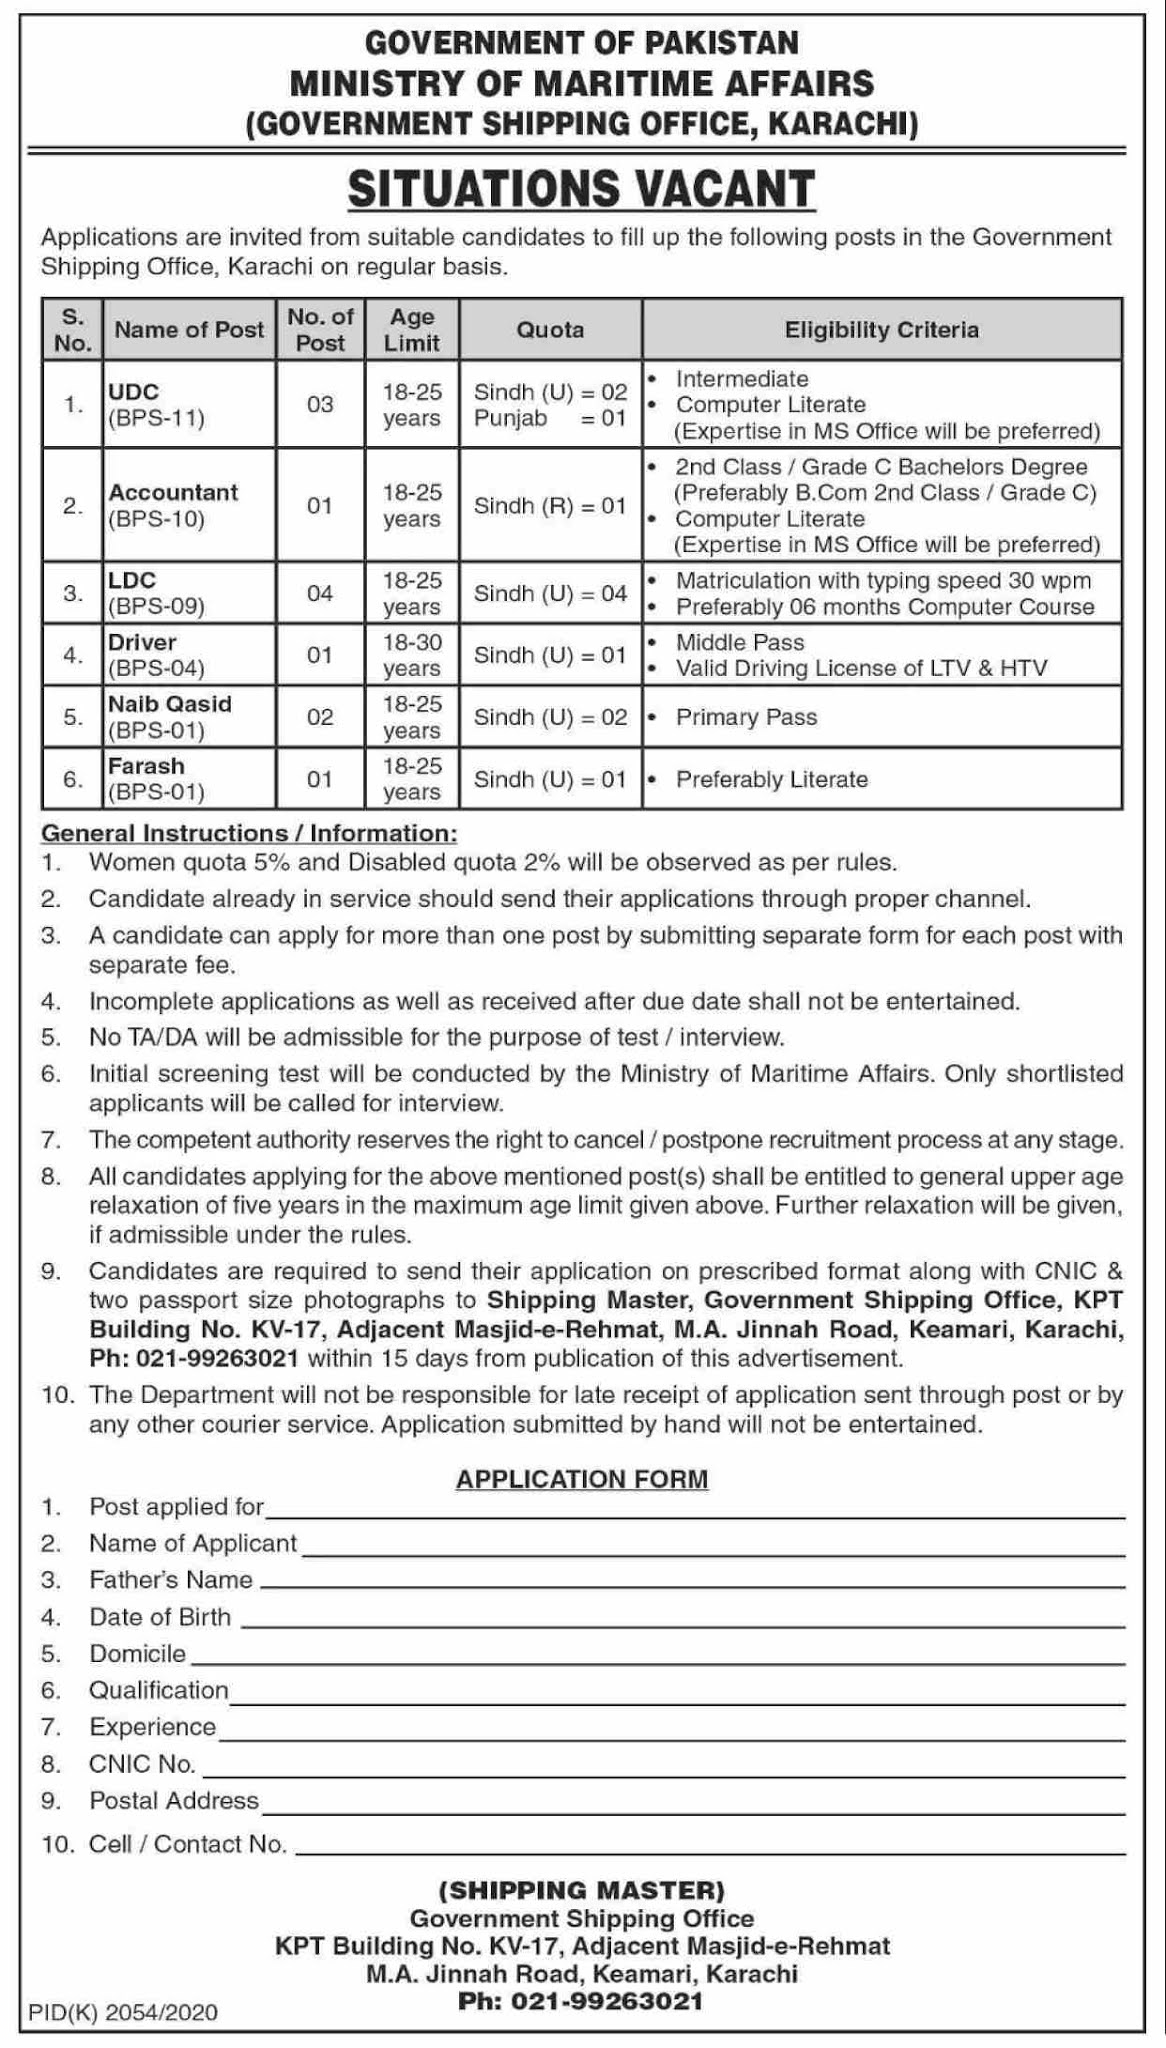 Ministry of Maritime Affairs Jobs 2021 - Government of Pakistan Latest Jobs 2021 - Download Job Application Form